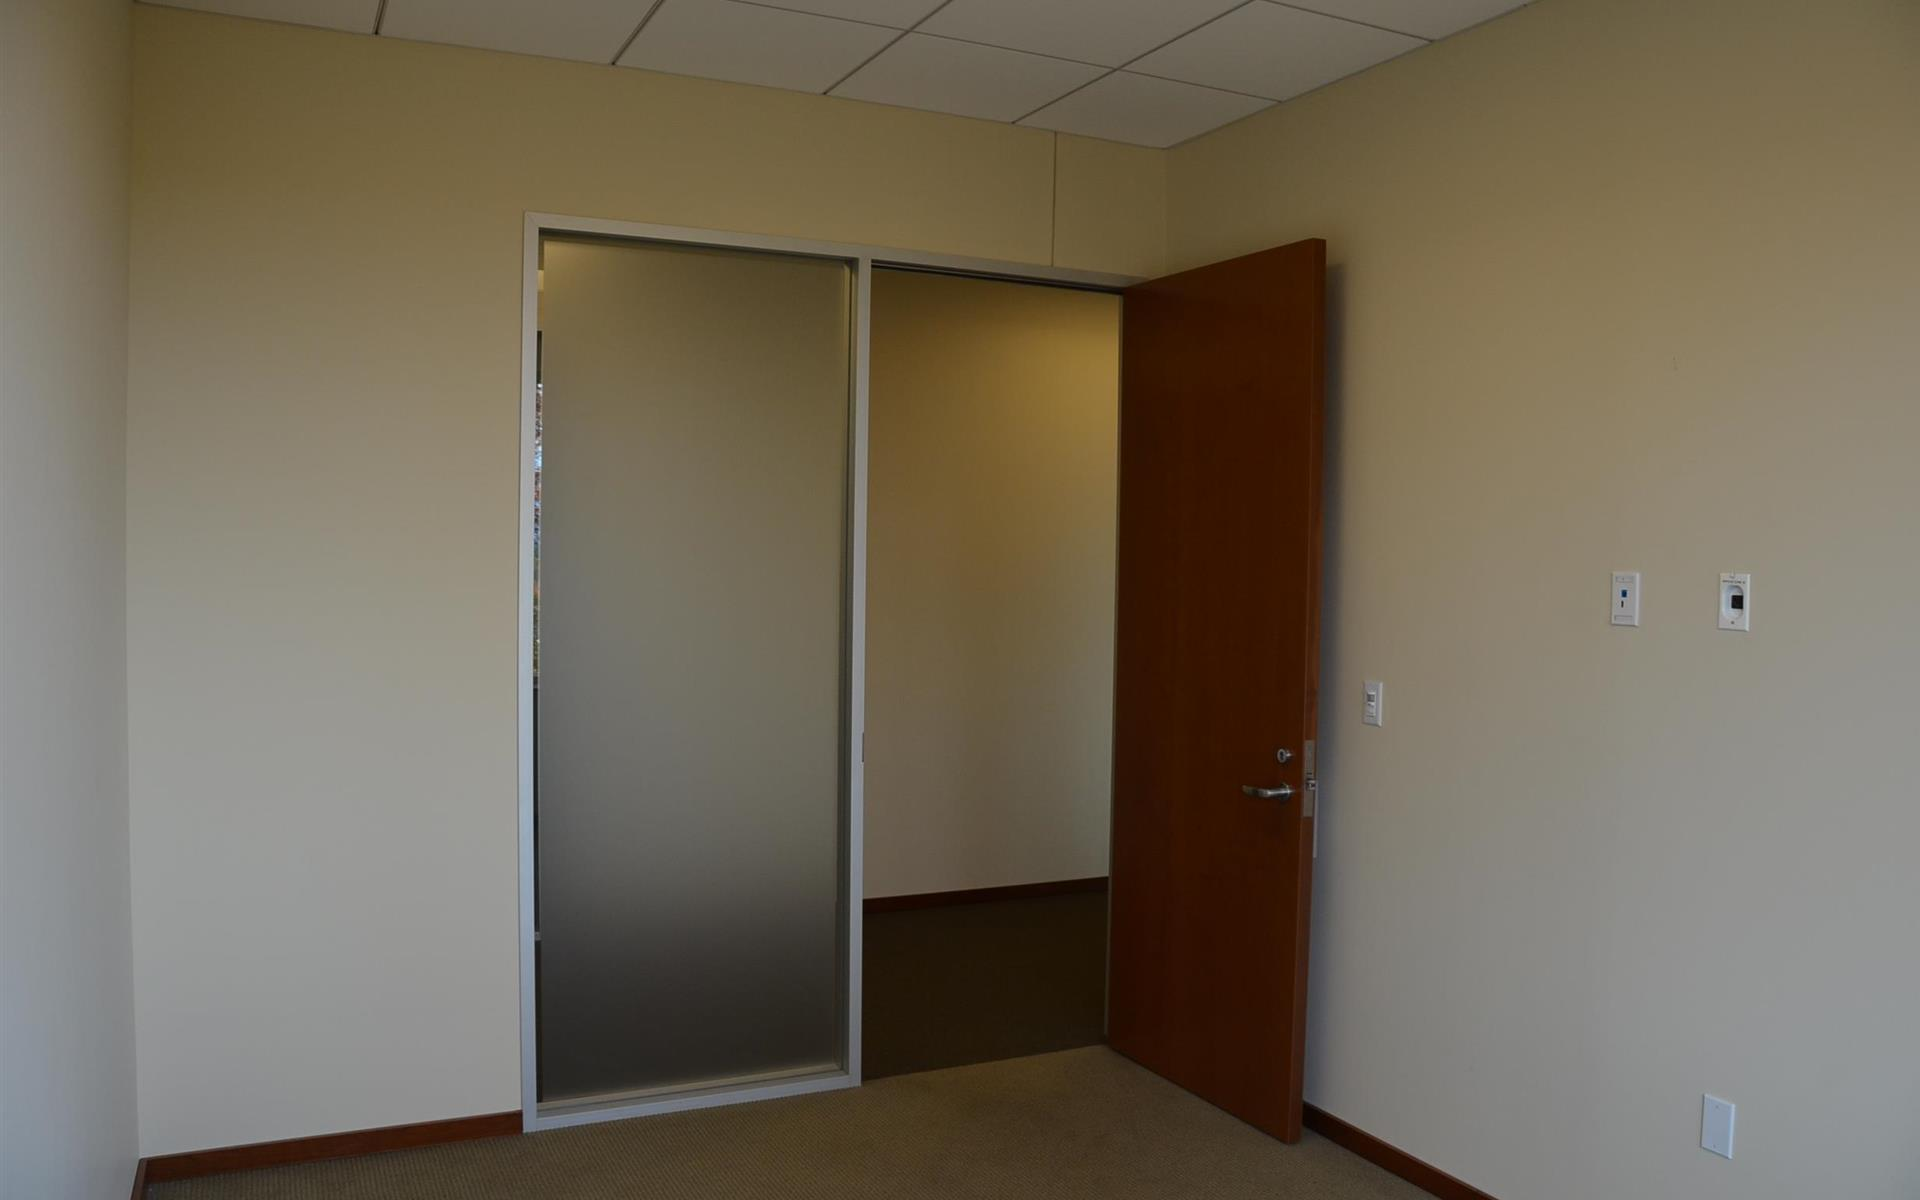 880 Winter Street - Waltham, MA - Private Office | Office 2